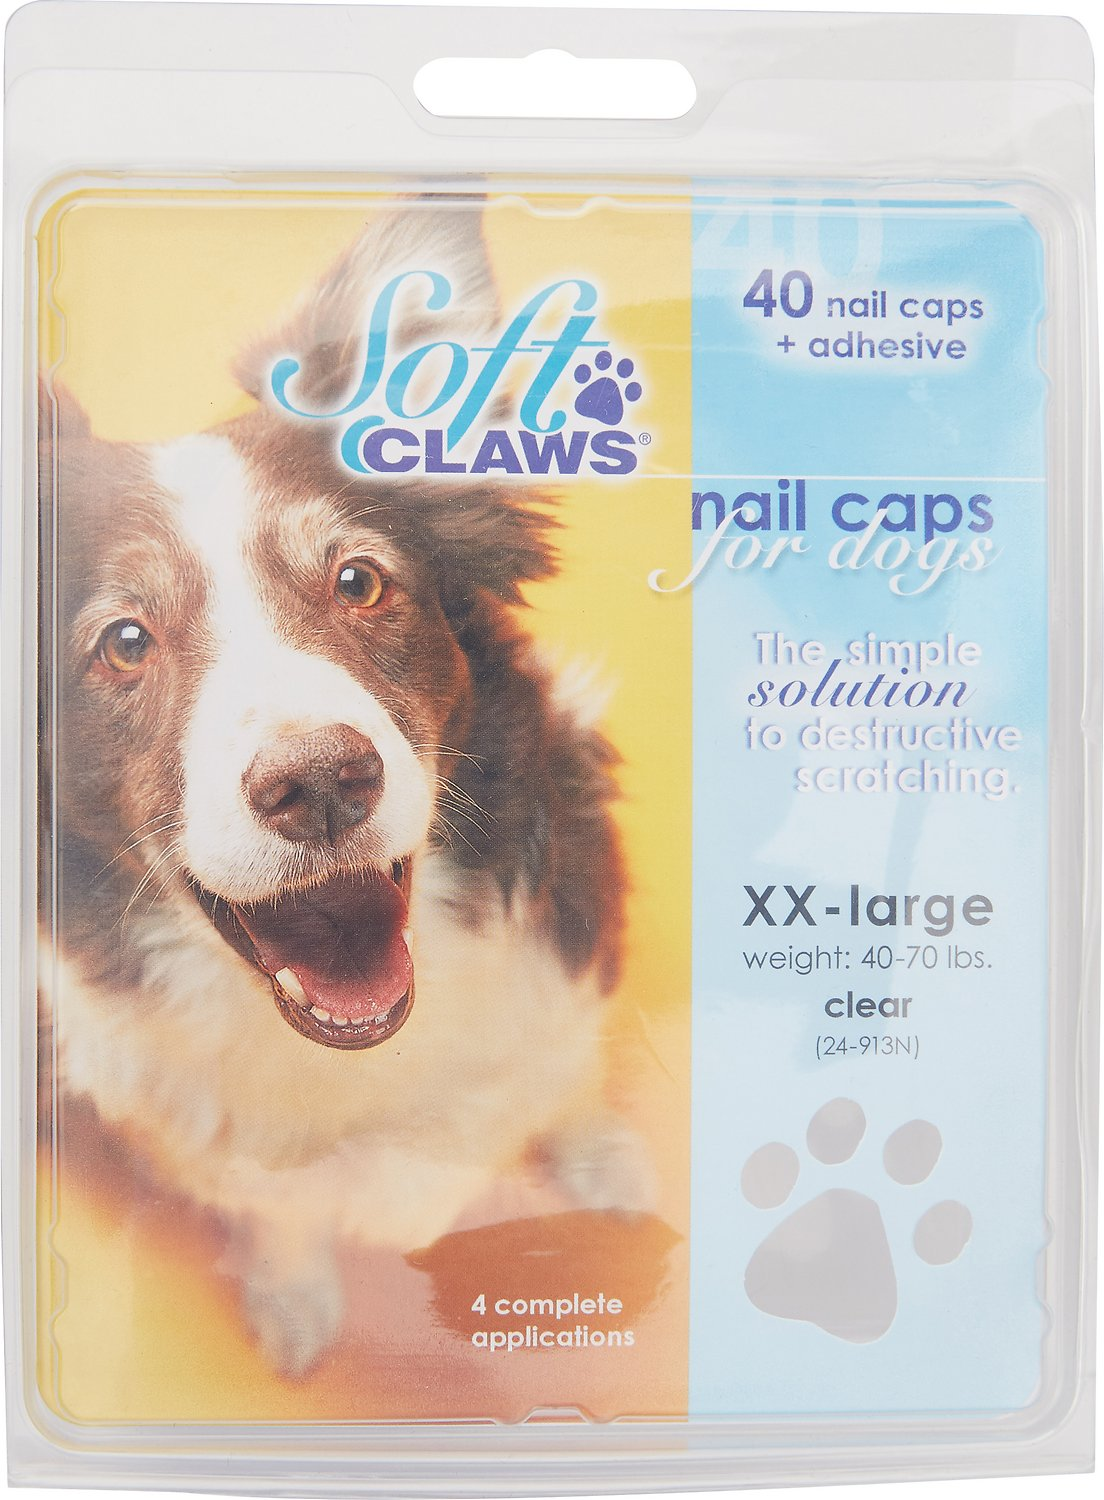 Soft Claws Nail Caps for Dogs, 40 Count, XX-Large, Clear - Chewy.com